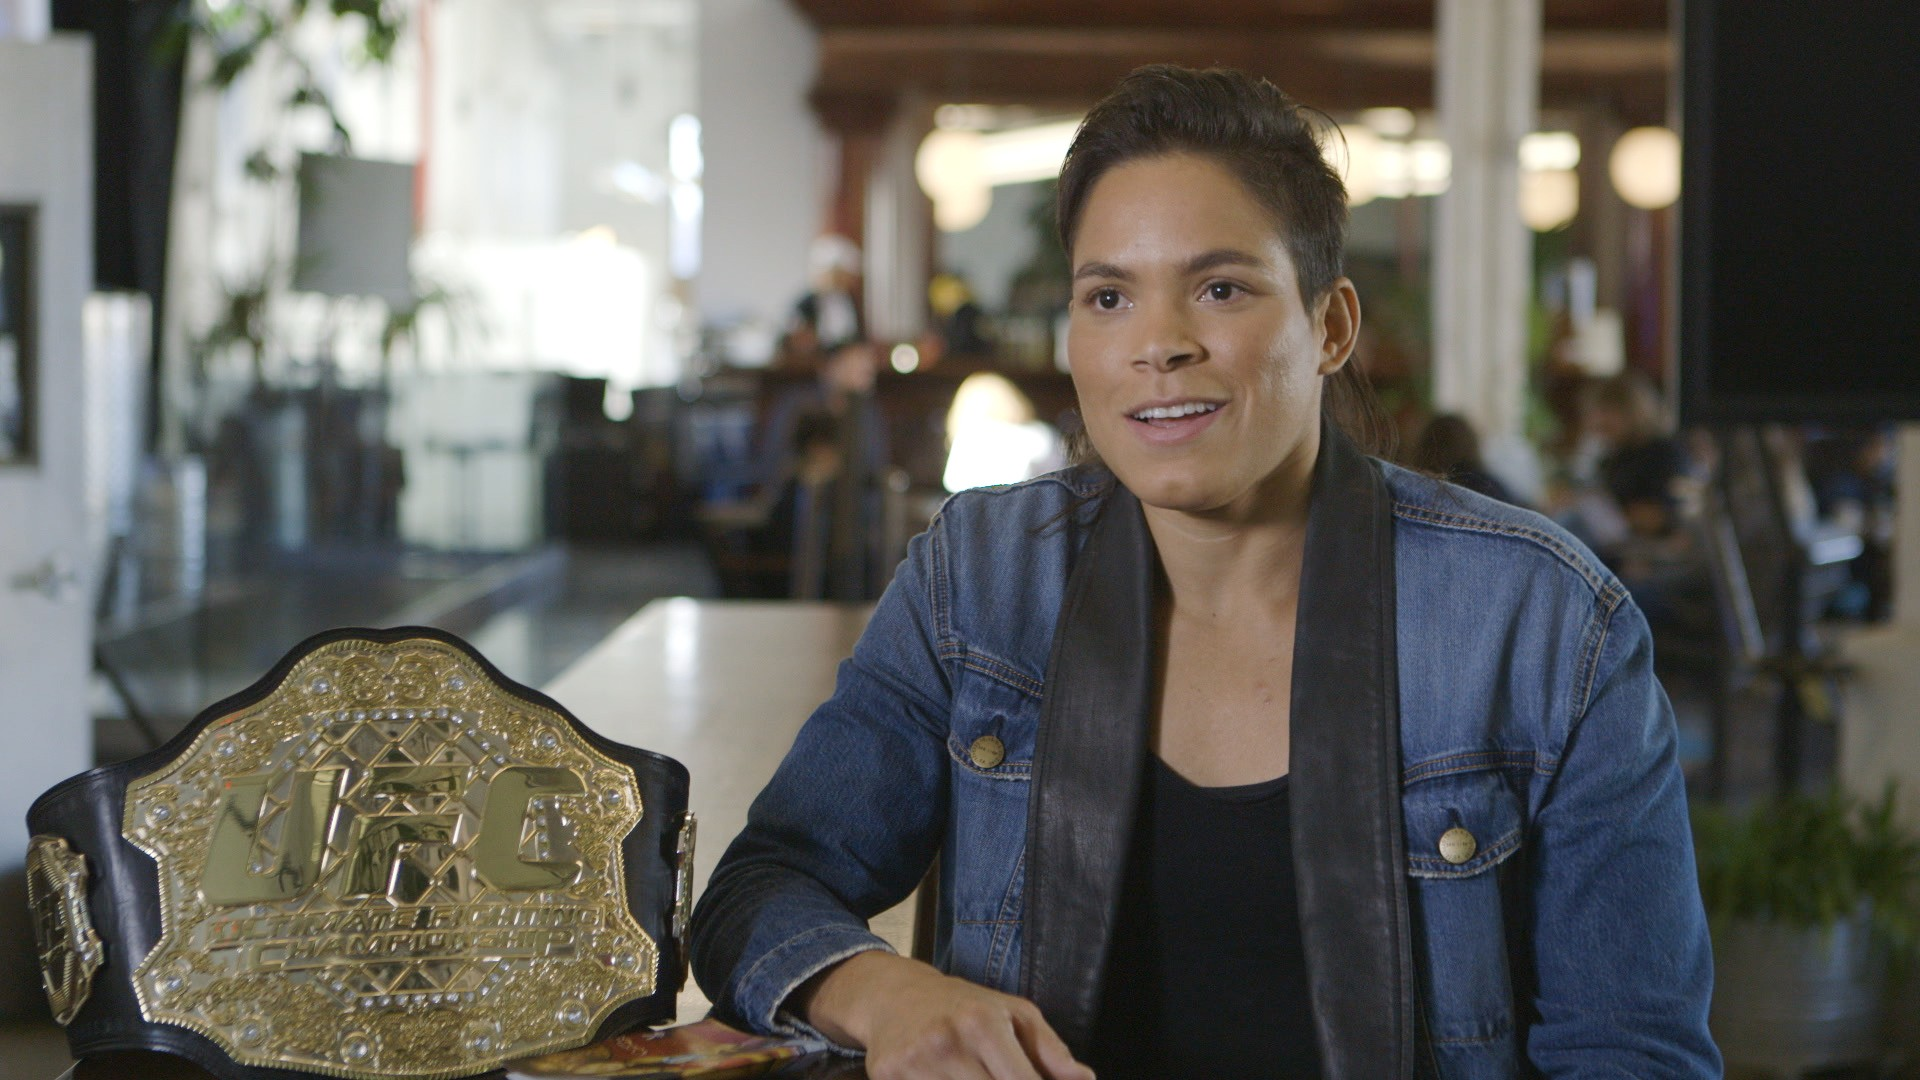 Amanda Nunes on KO'ing Ronda Rousey and Creating Her Own Shine